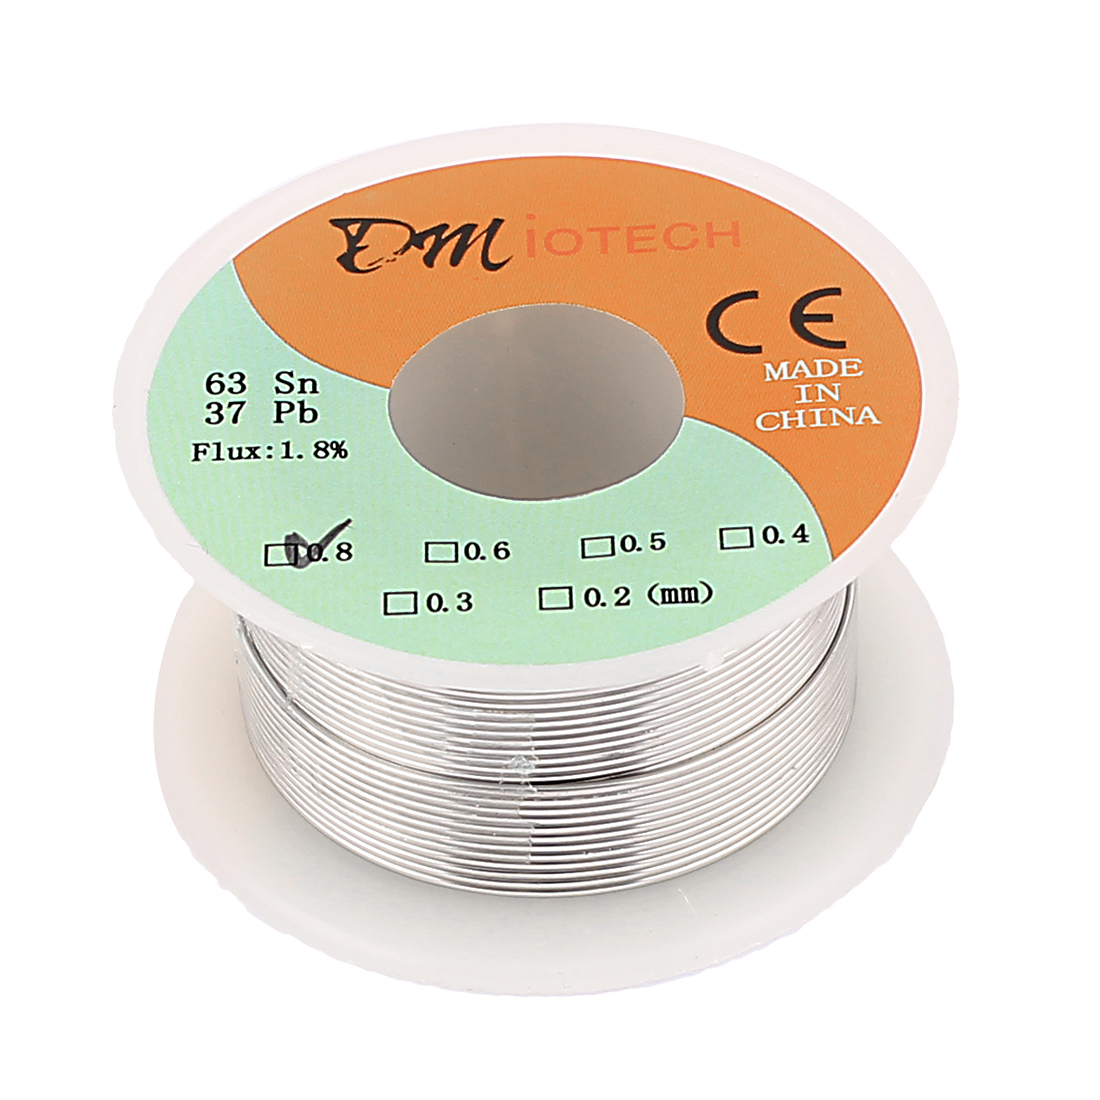 0.8mm 35G 63/37 Rosin Core Flux 1.8% Tin Lead Soldering Solder Wire